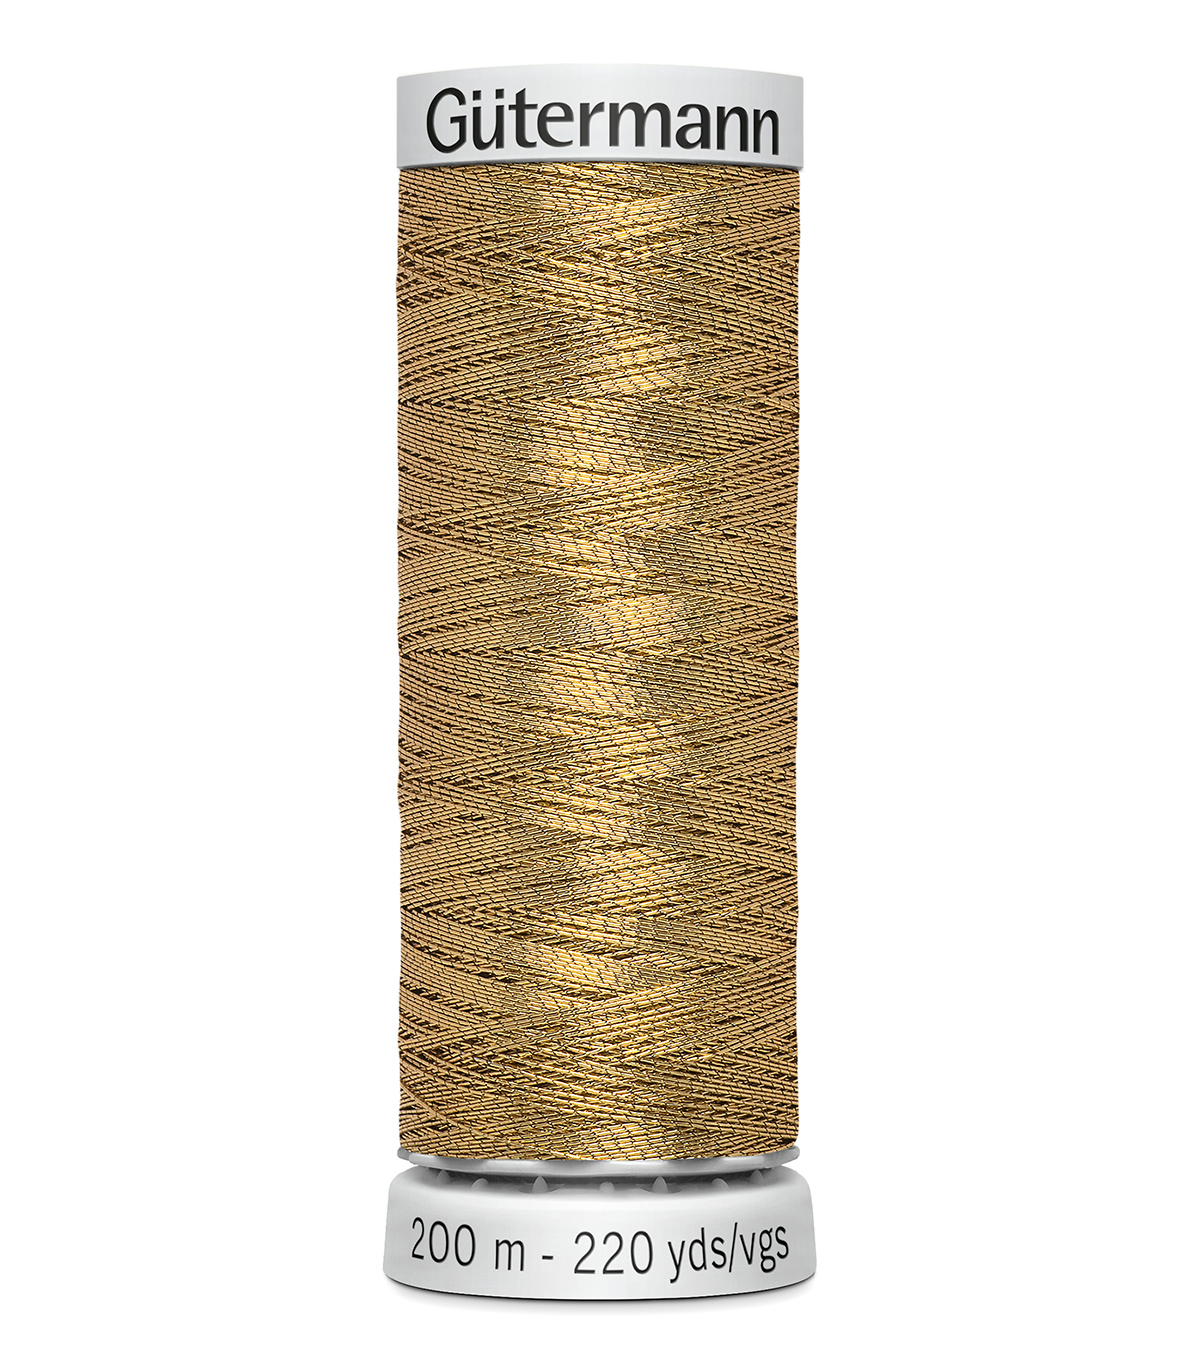 Gutermann 200M Dekor Thread, 200m Dekor Metallic 9961 Golde